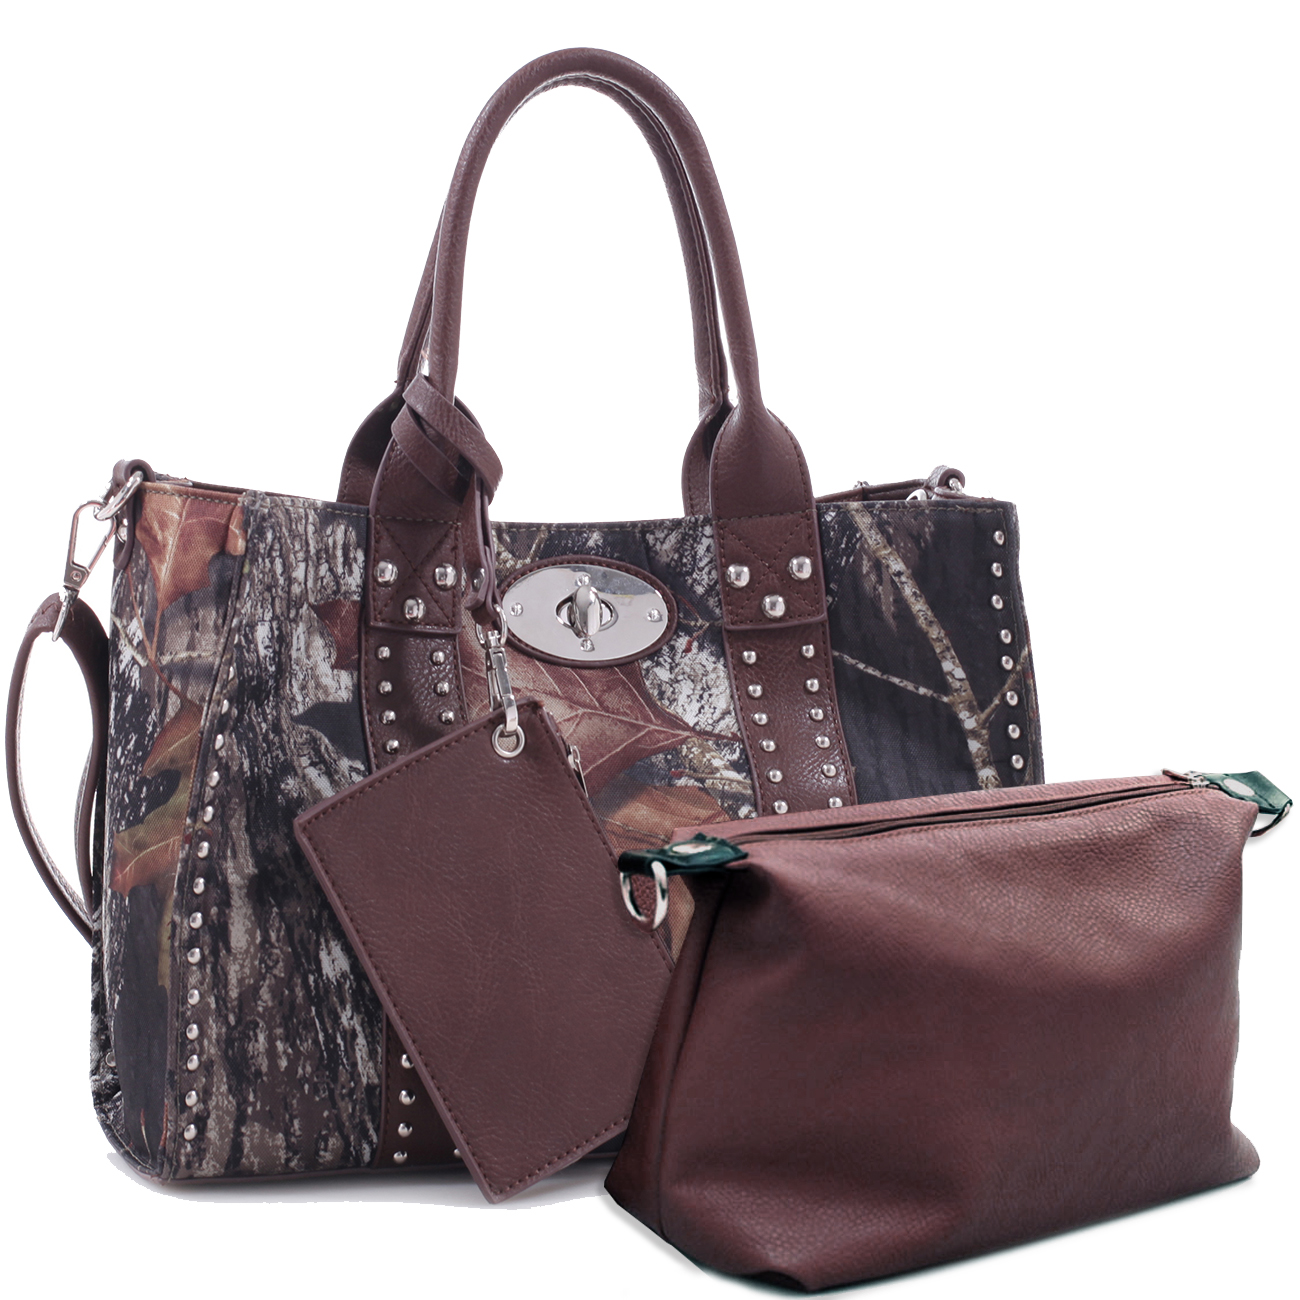 Mossy Oak® 2-in-1 Studded Twist Lock Satchel with Shoulder Strap